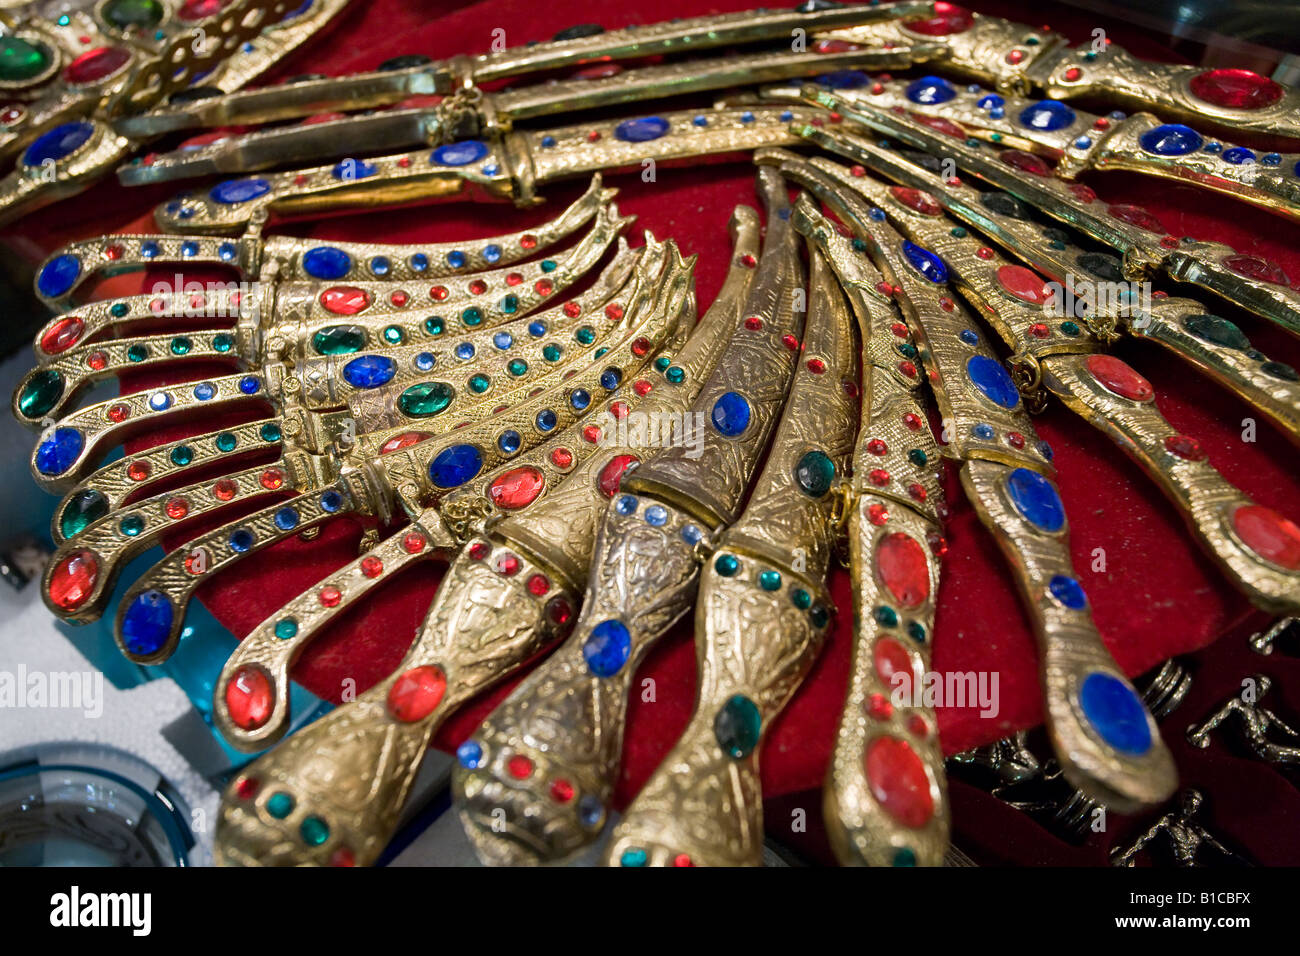 Letter Daggers. An array of jewel encrusted letter openers is part of a vendor display in the famous Istanbul Grand - Stock Image